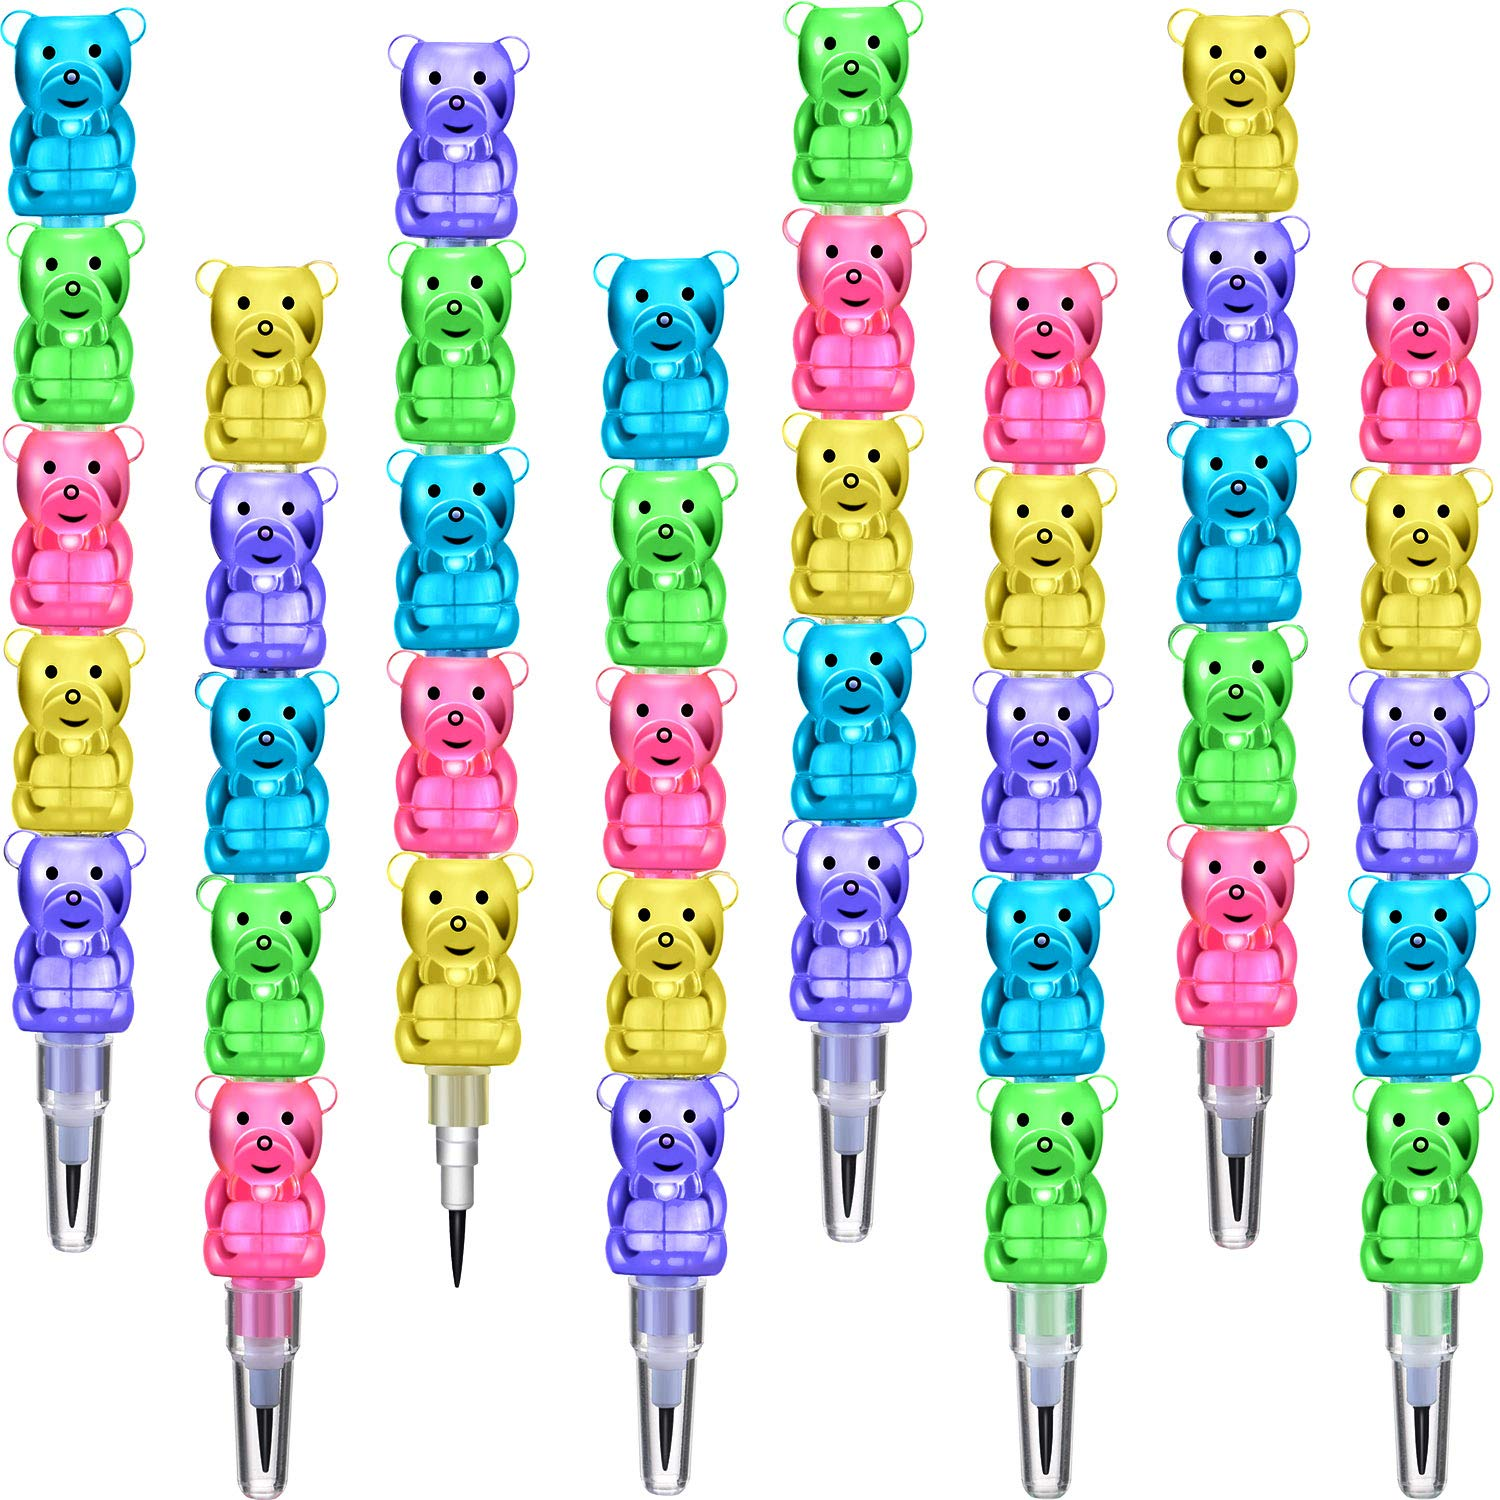 30 Pieces Stackable Pencils Plastic Bear Pencils 5 in 1 Stacking Colored Pencils Party Favors for Birthday Party Supplies by Boao